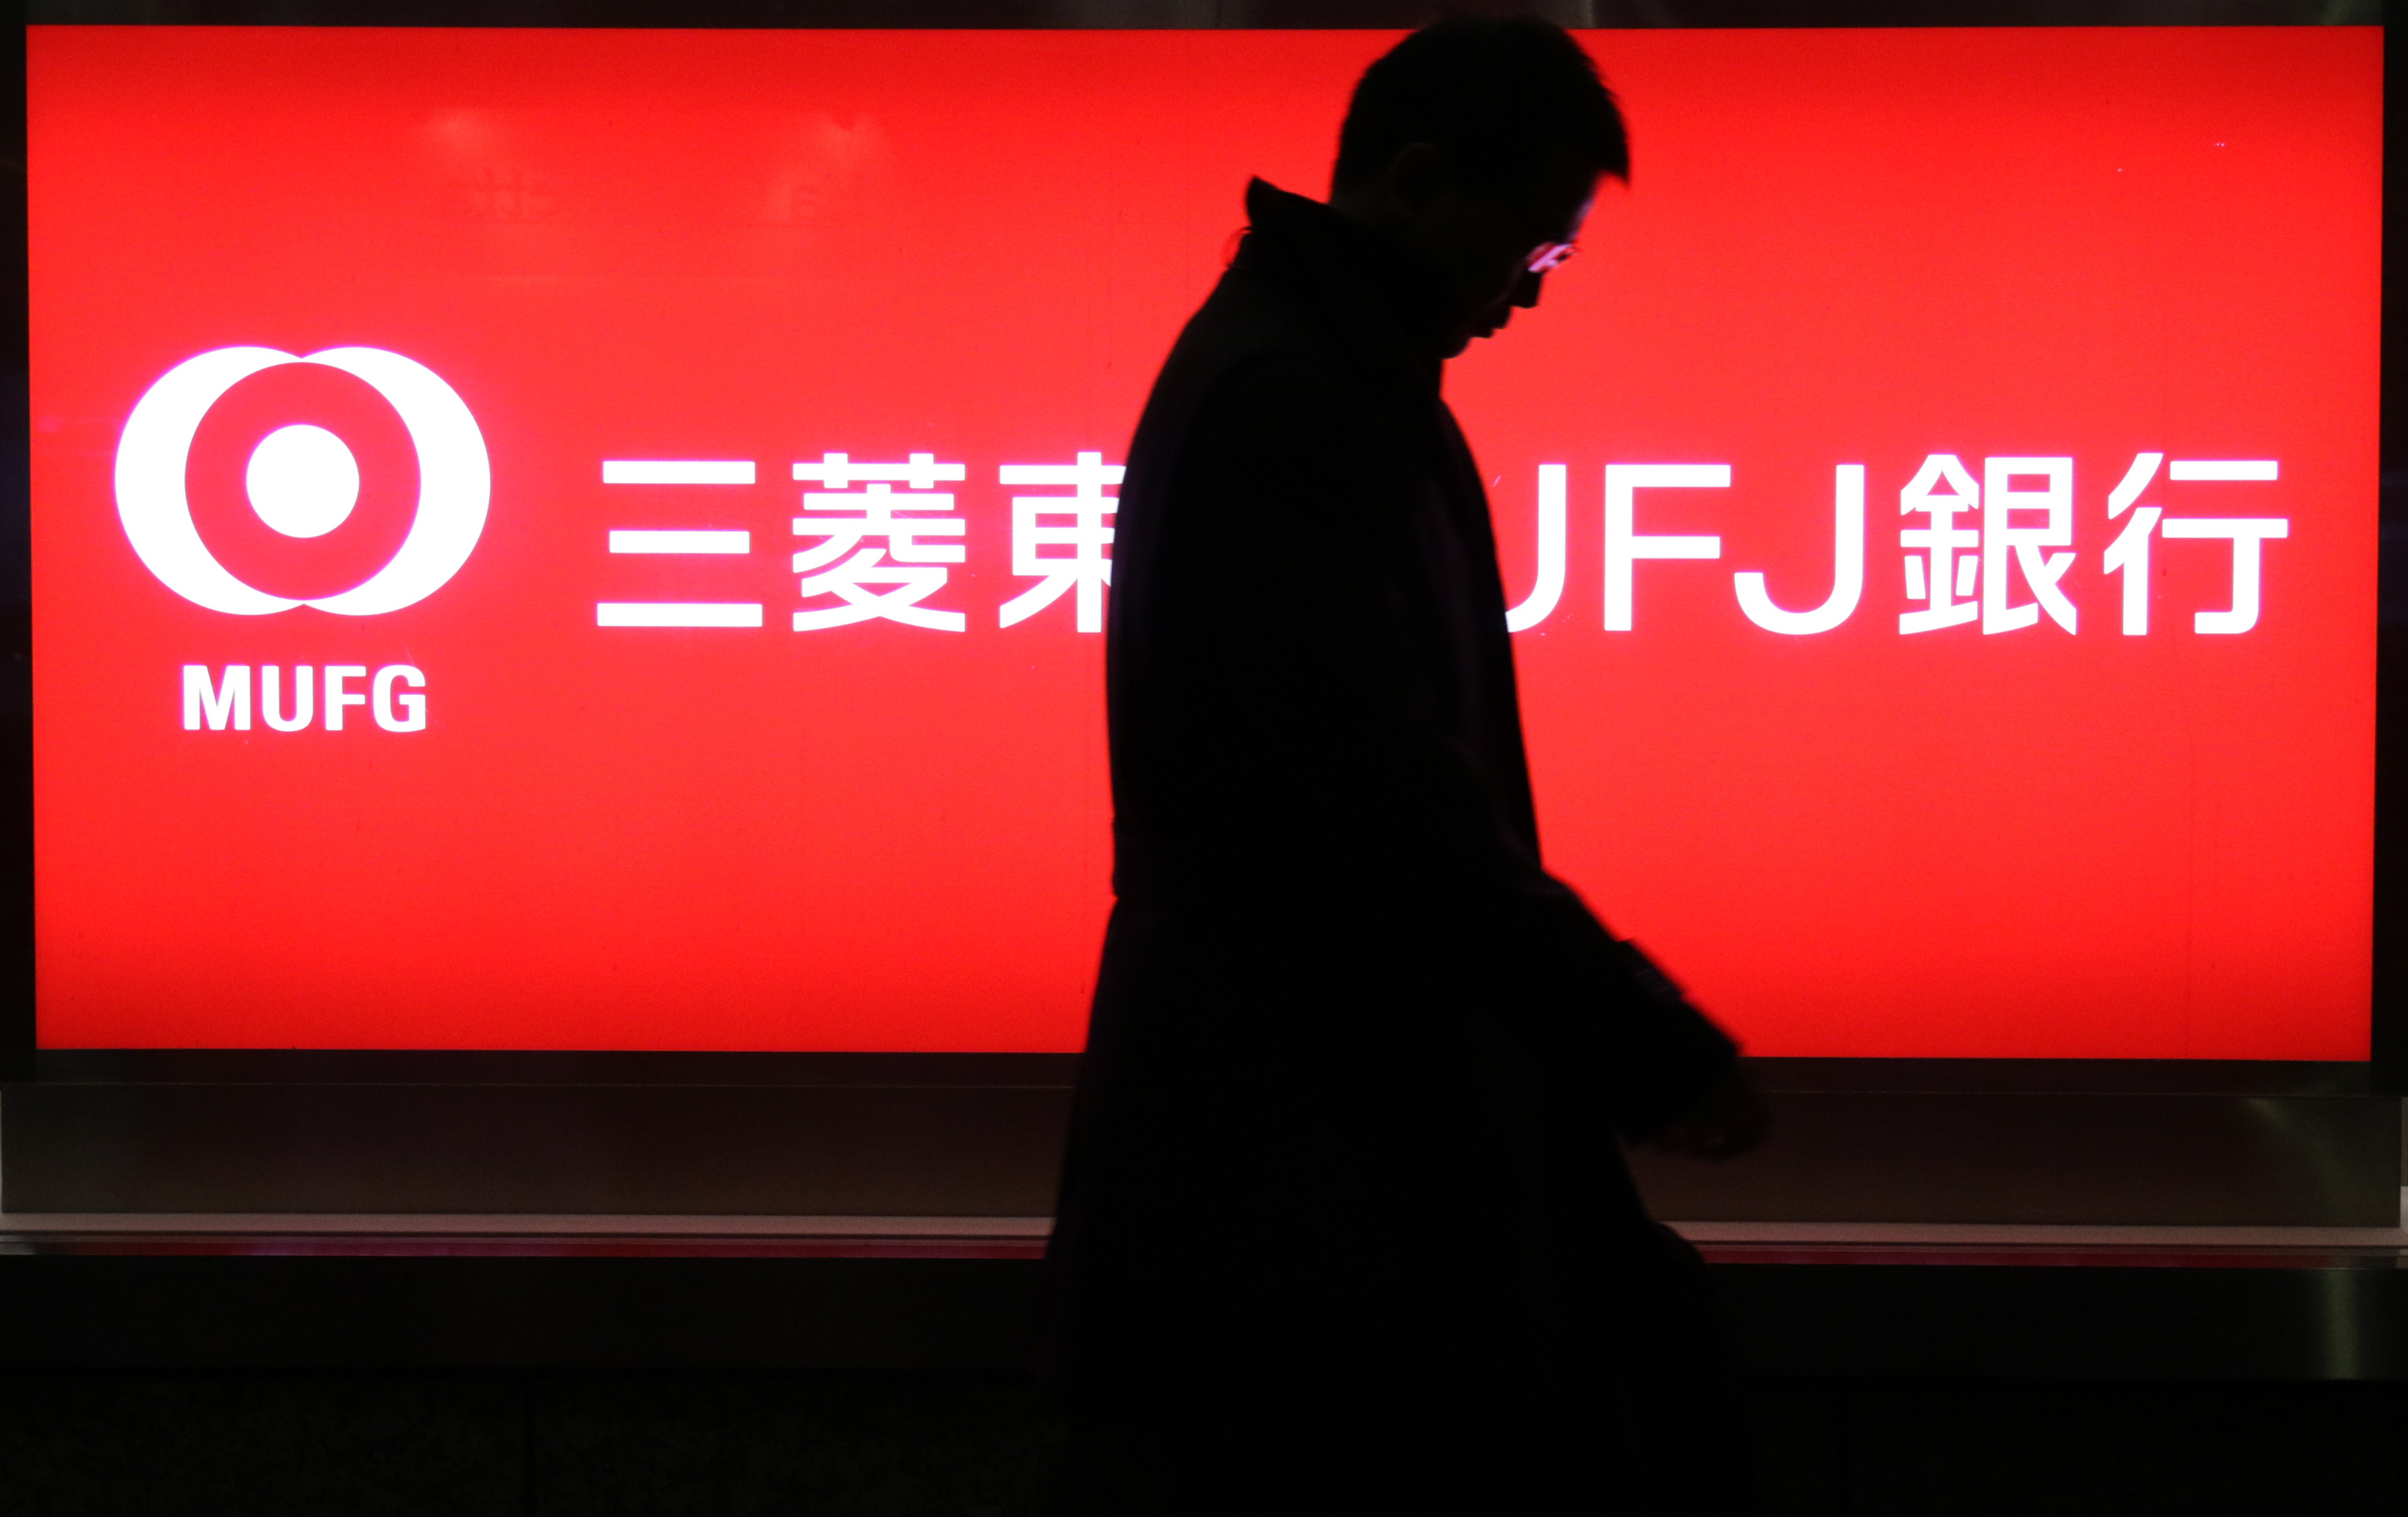 A customer walks past a Bank of Tokyo Mitsubishi UFJ Ltd. branch in Tokyo on Feb. 2. As Japan's sovereign bond yields languish near zero, the regular payouts to megabank shareholders are starting to look more attractive to investors. | BLOOMBERG